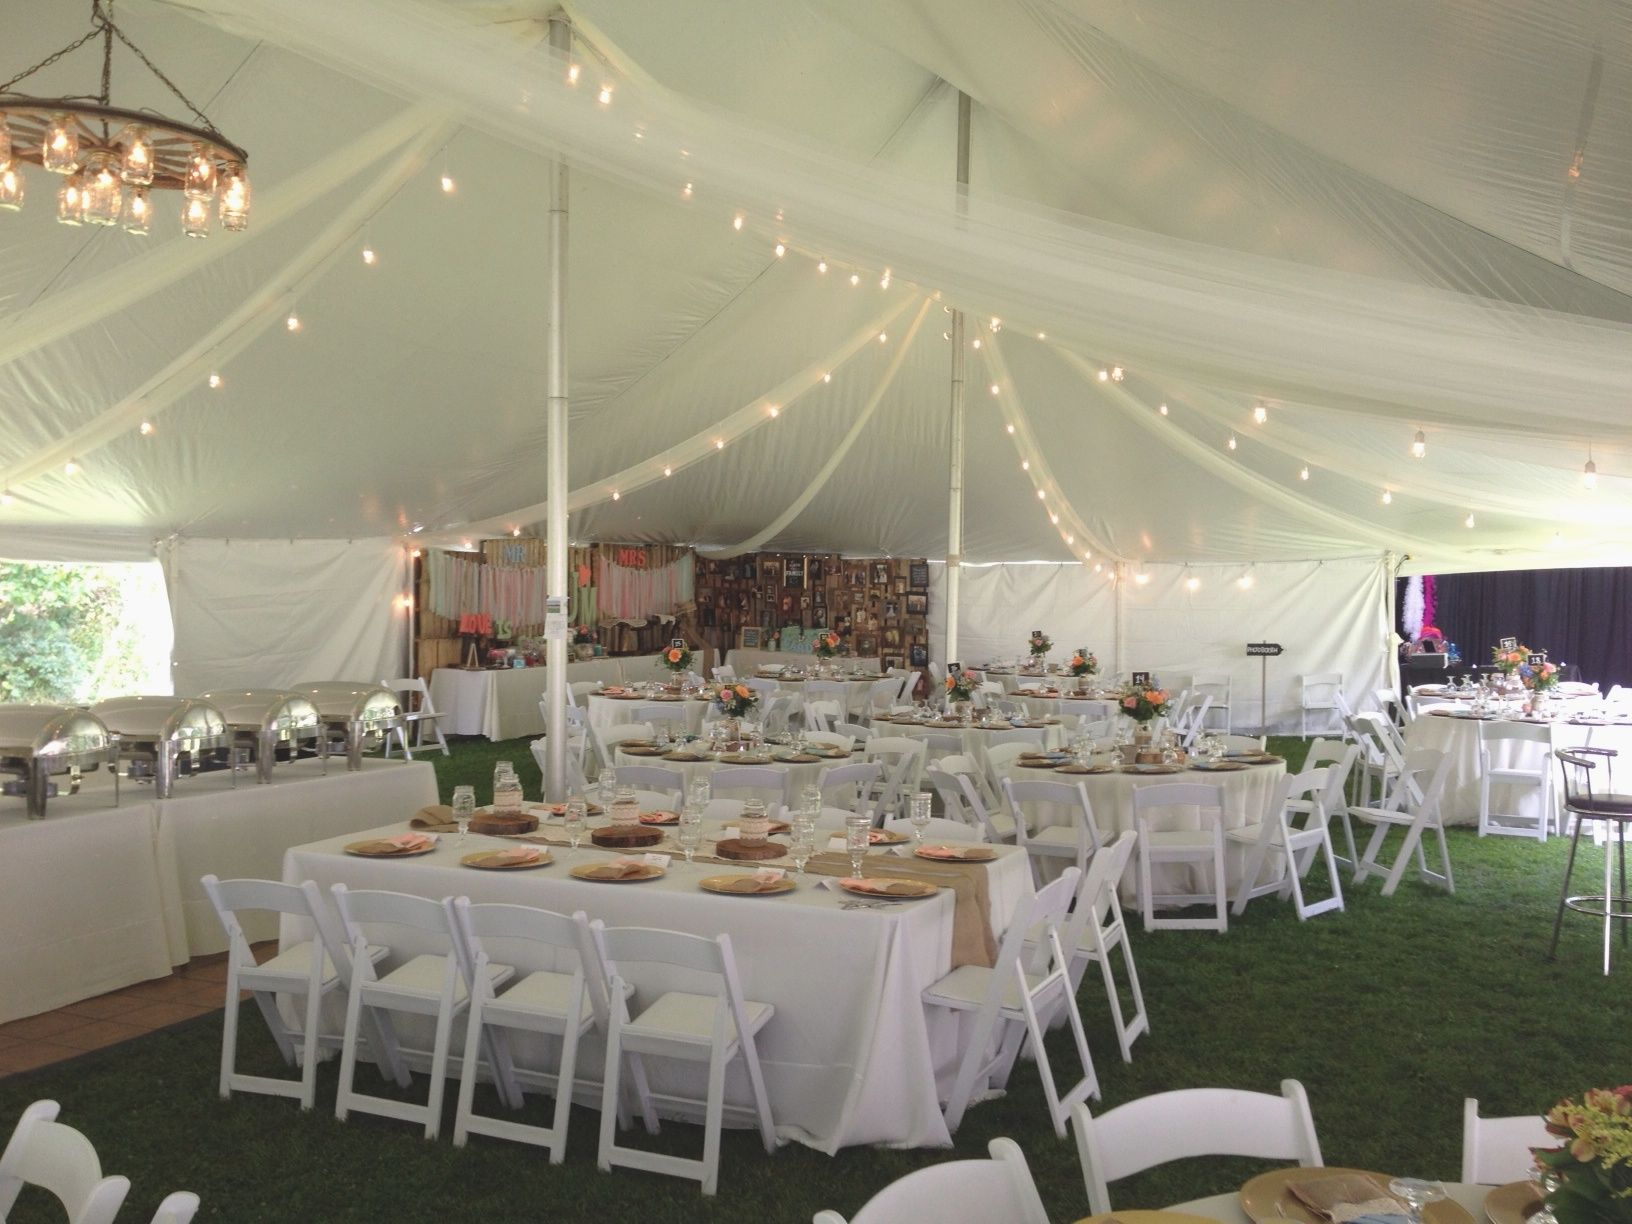 chair rental detroit metal chairs pottery barn a beautiful diy vitange country-chic wedding. 40 x 100 pole tent for wedding of 230 guests ...